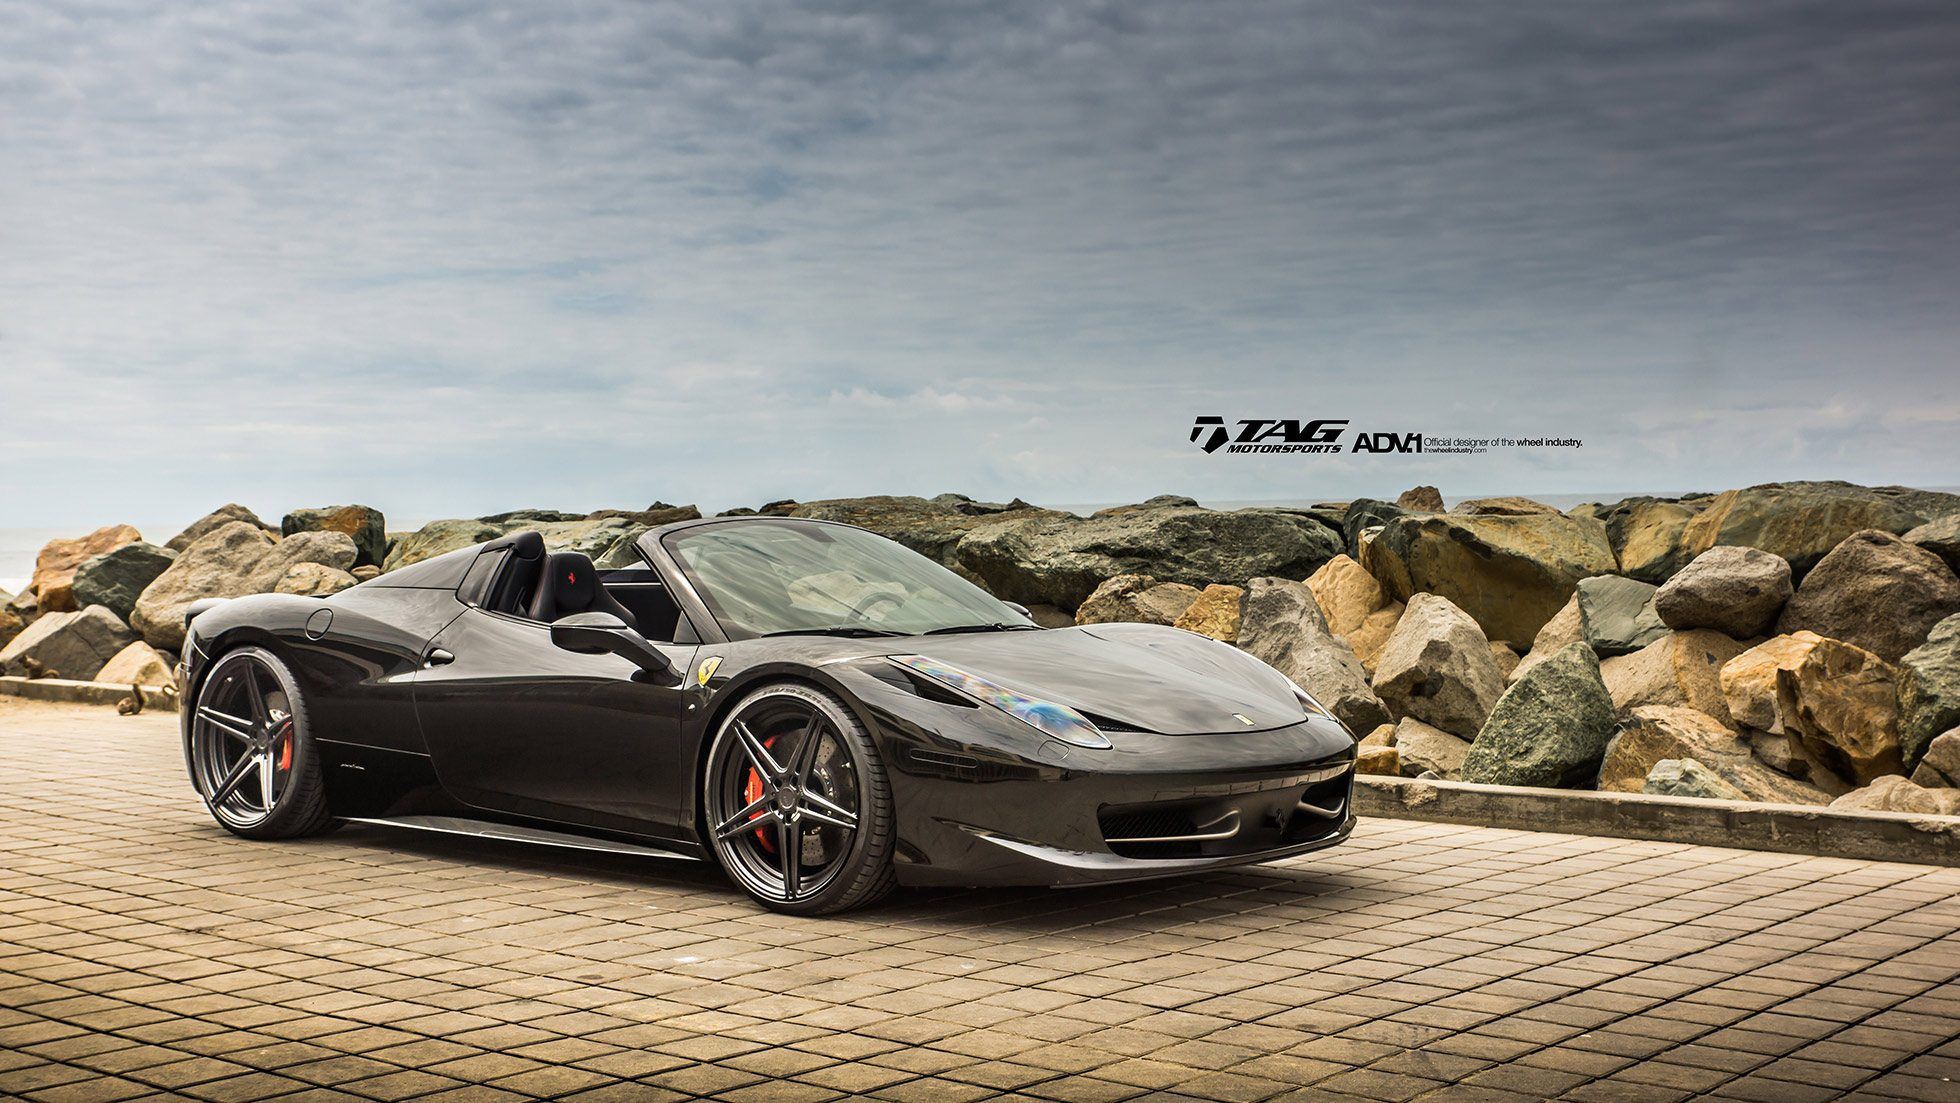 ferrari 458 italia spider on adv 1 wheels by tag motorsports. Black Bedroom Furniture Sets. Home Design Ideas